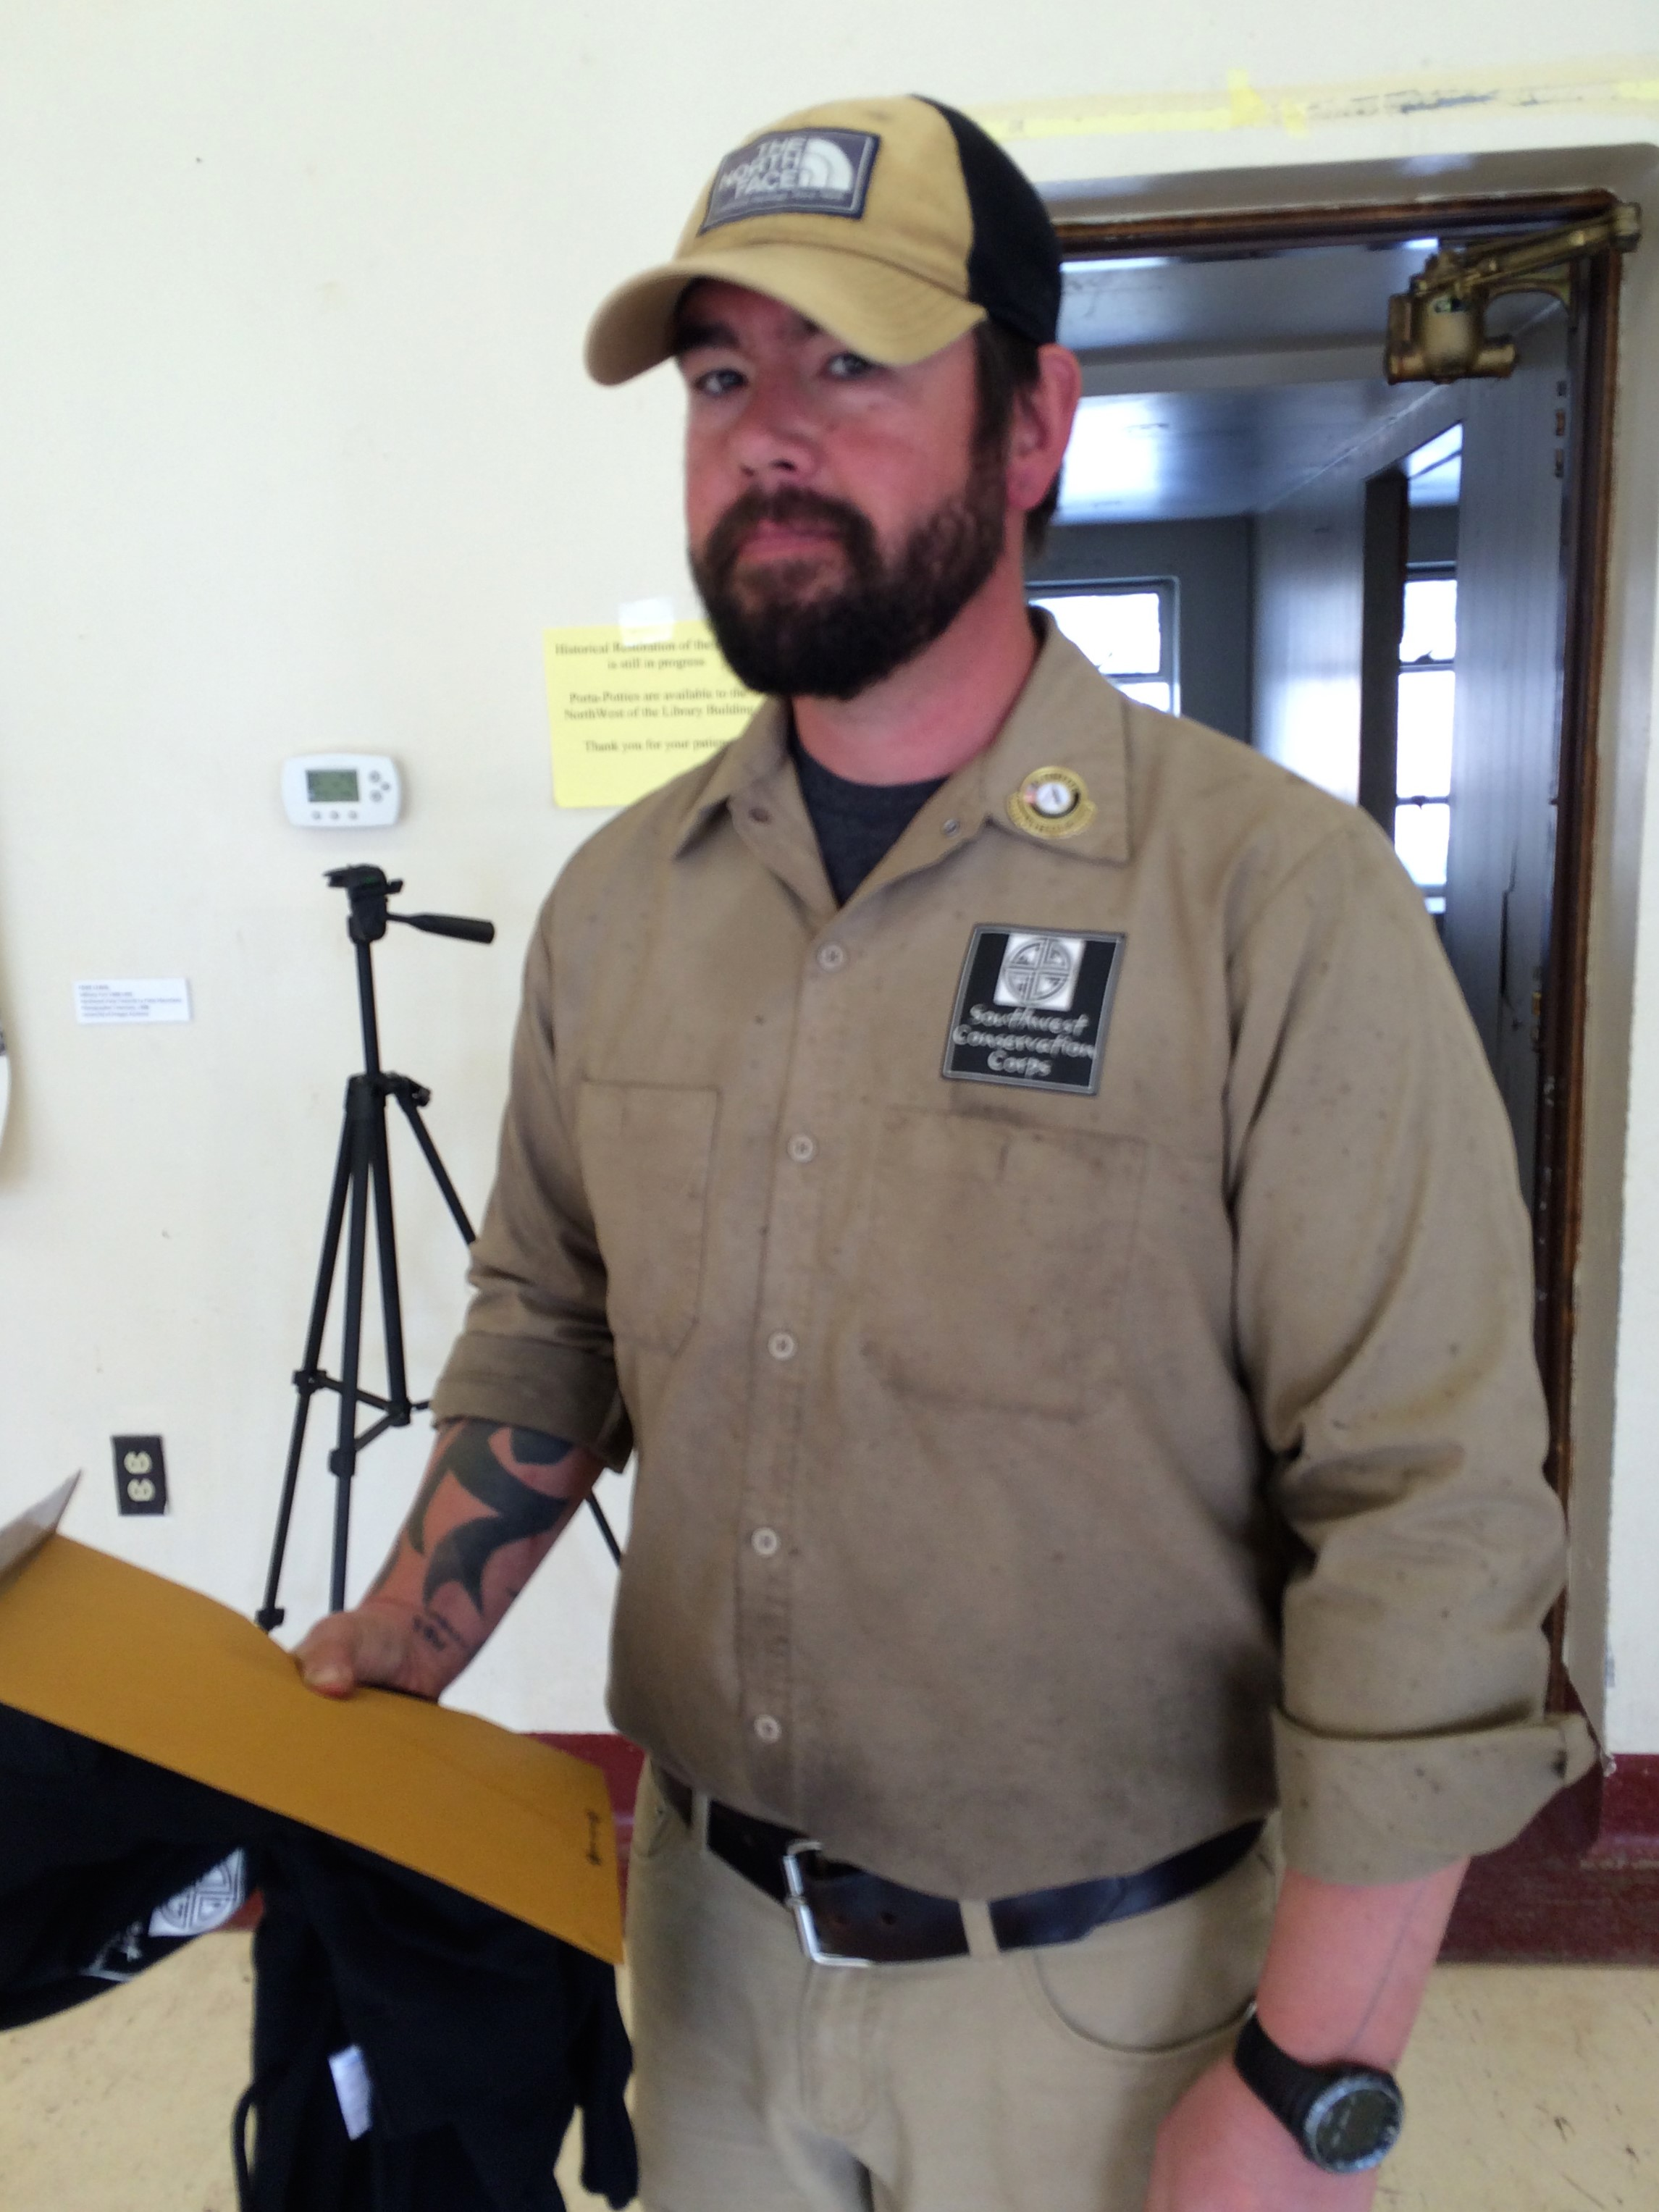 The forest service manages public lands based on the greatest good for the greatest number in the long run. U S Forest Service 21st Century Conservation Service Corps